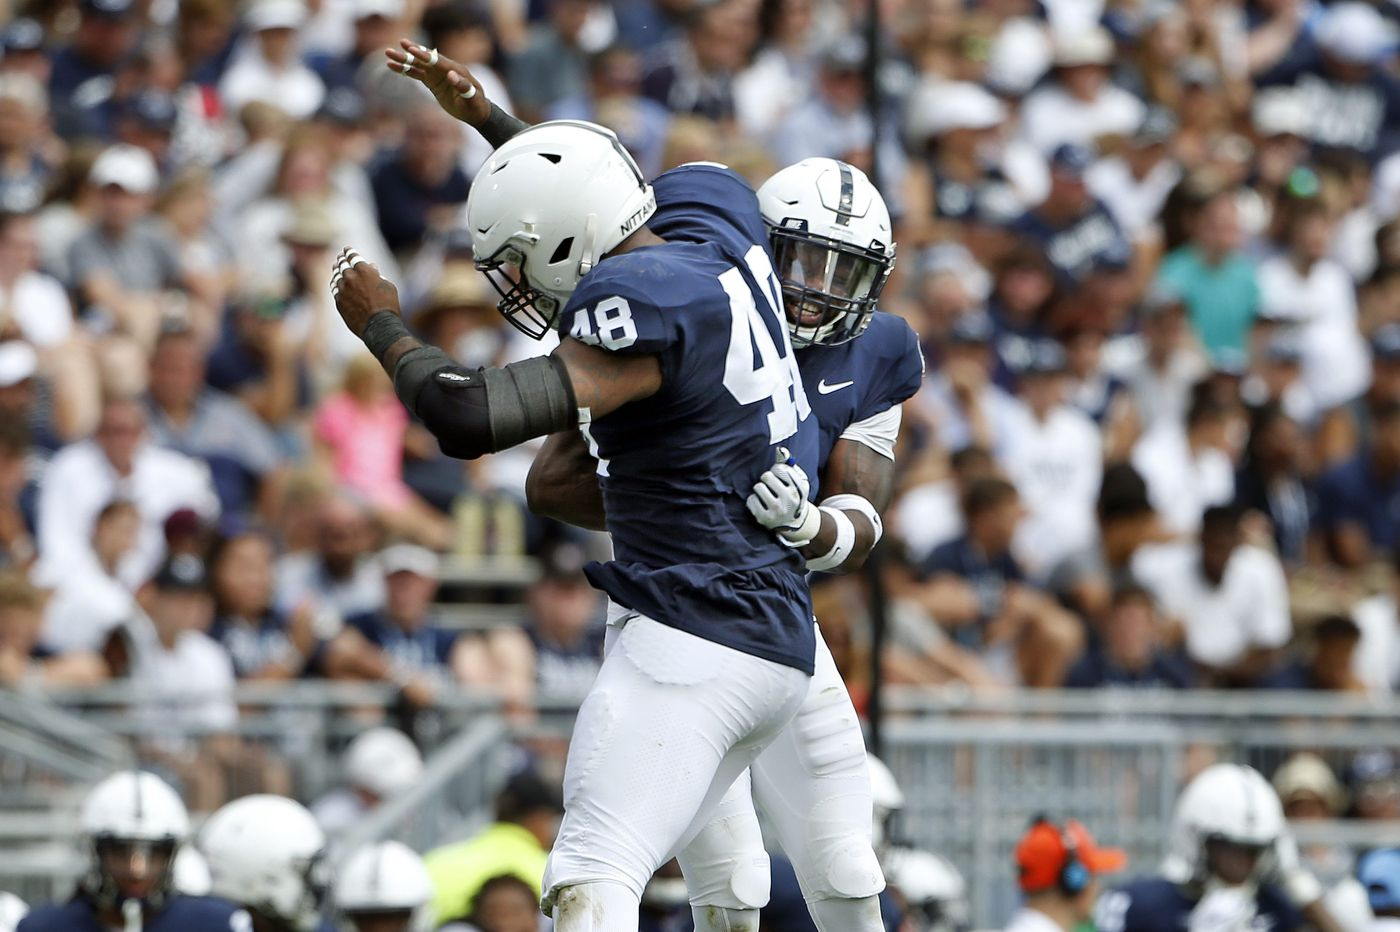 Penn State's showdown with Ohio State set for prime time